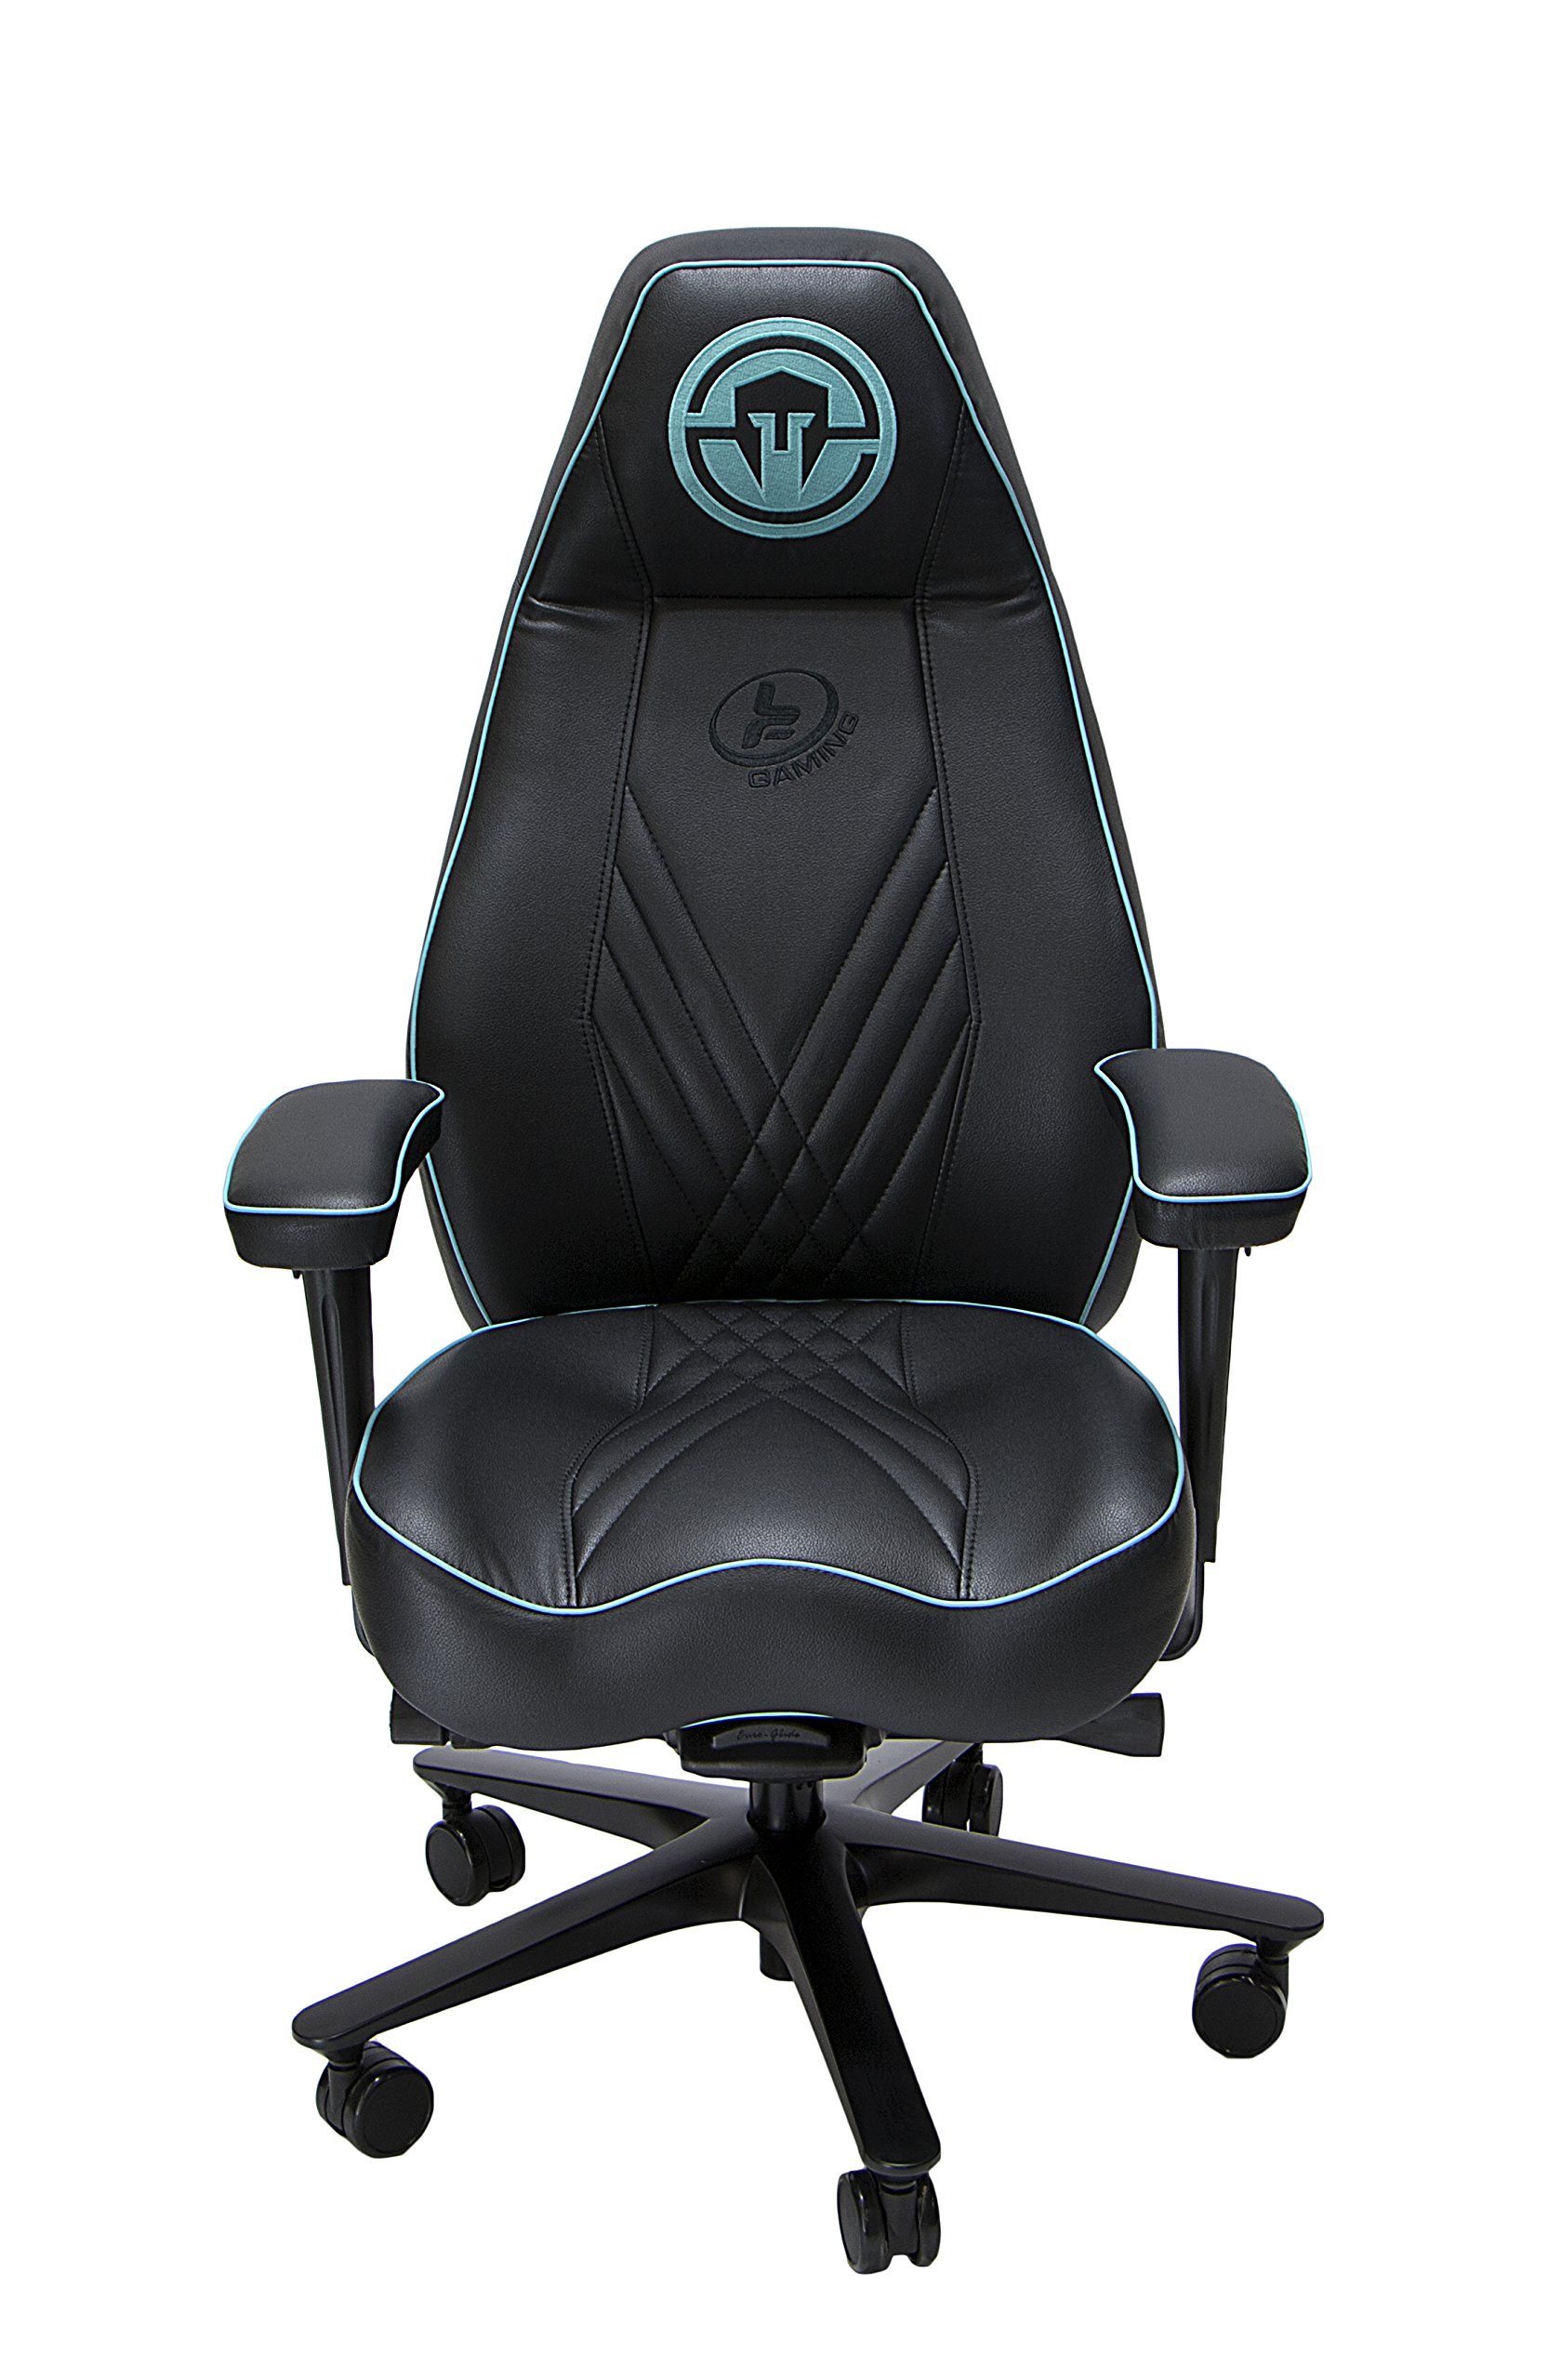 Swell Galleon Lf Gaming Stealth Gaming Chair Pc Mac Linux Spiritservingveterans Wood Chair Design Ideas Spiritservingveteransorg